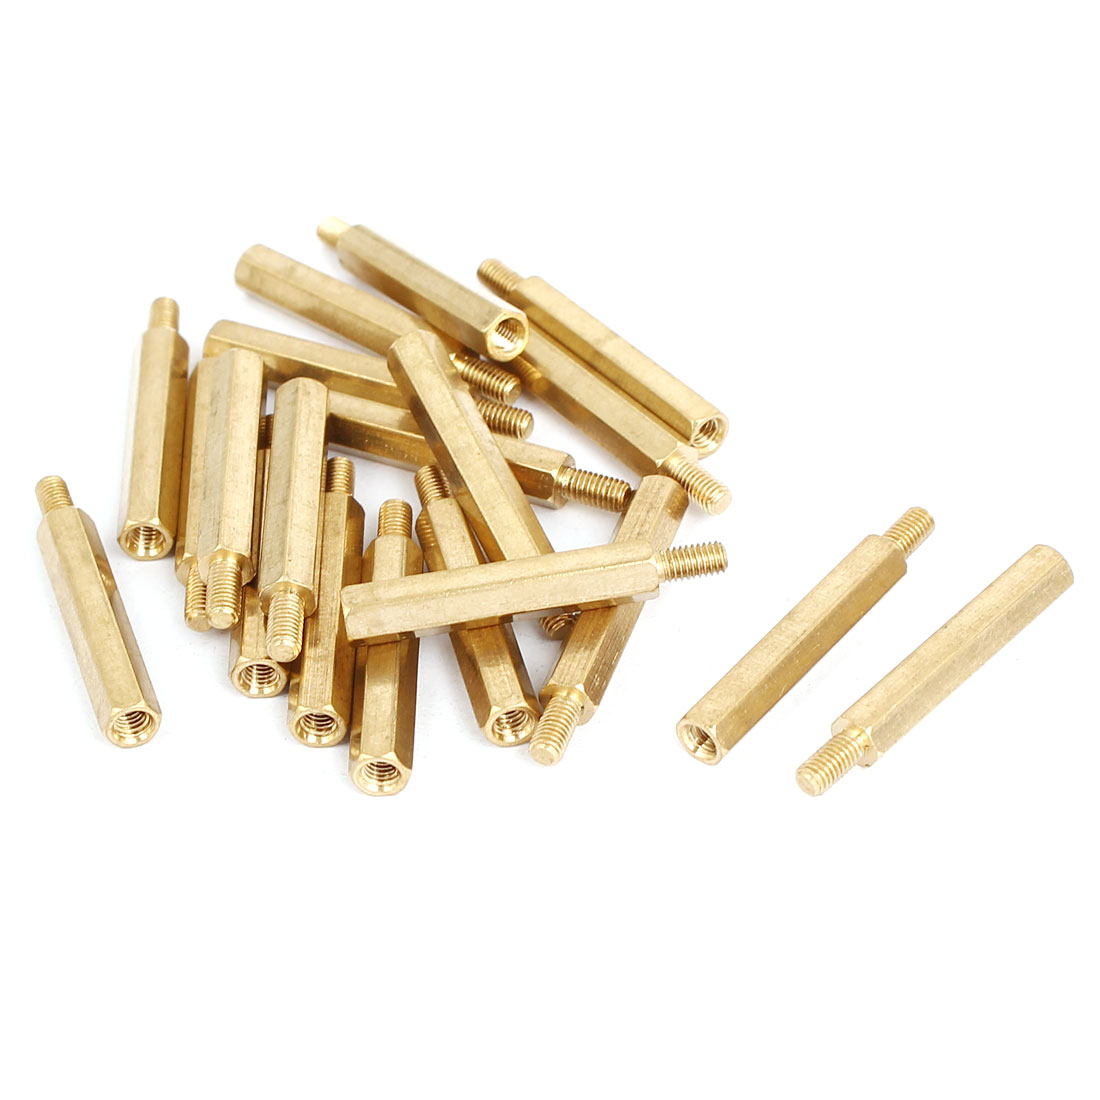 Unique Bargains M3x26mm+6mm Brass Threaded Hexagonal Male-Female Standoff Spacer Pillar 20pcs